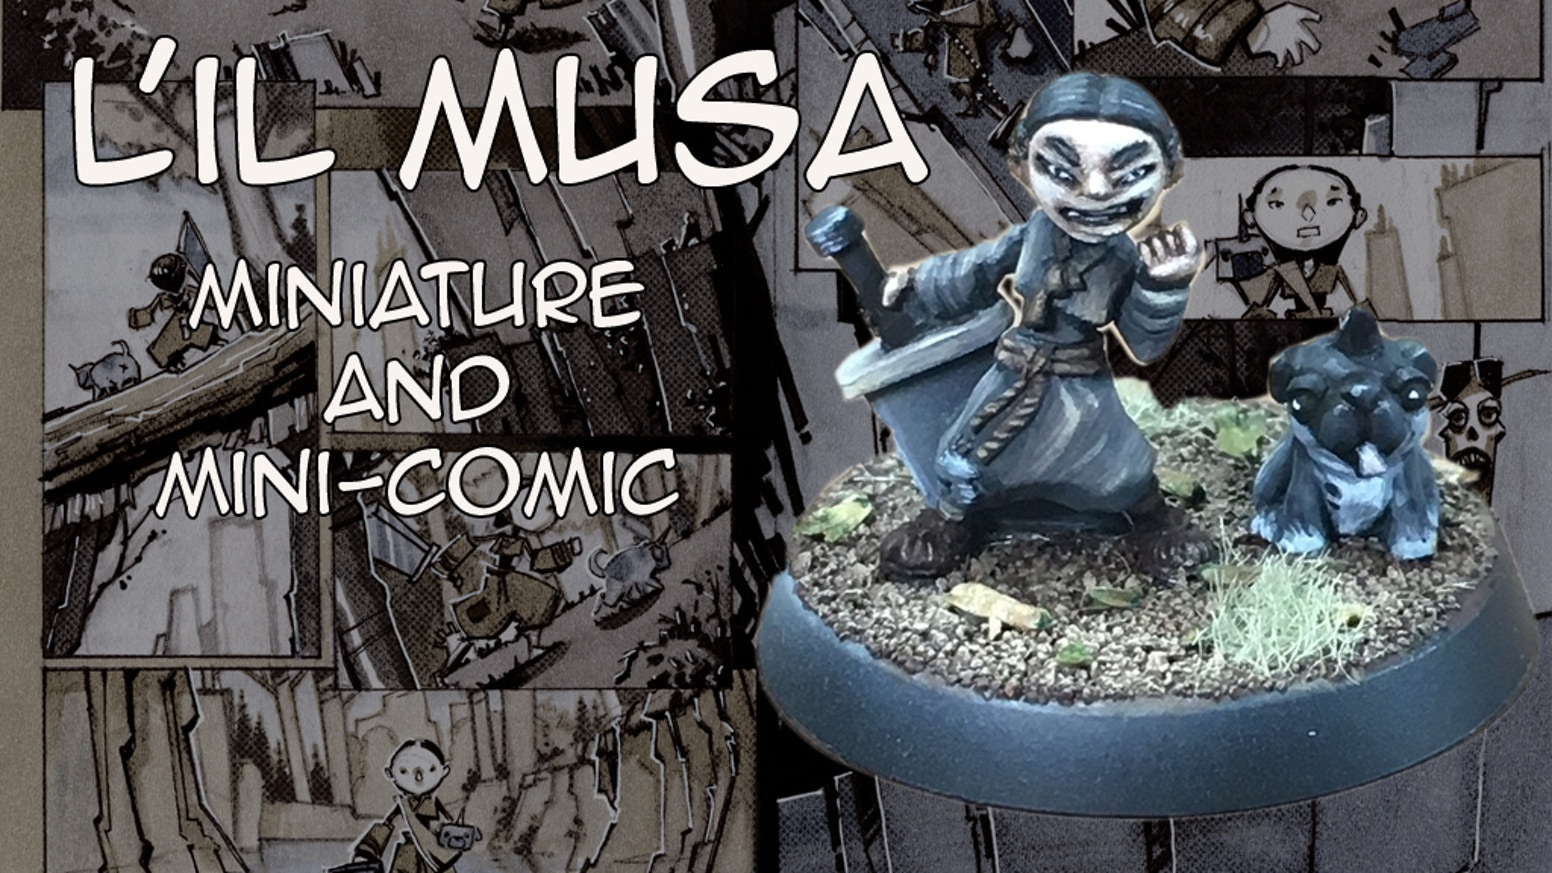 I'm creating a quality gaming miniature and  accompanying introductory mini-comic inspired by Joseon era mythology.